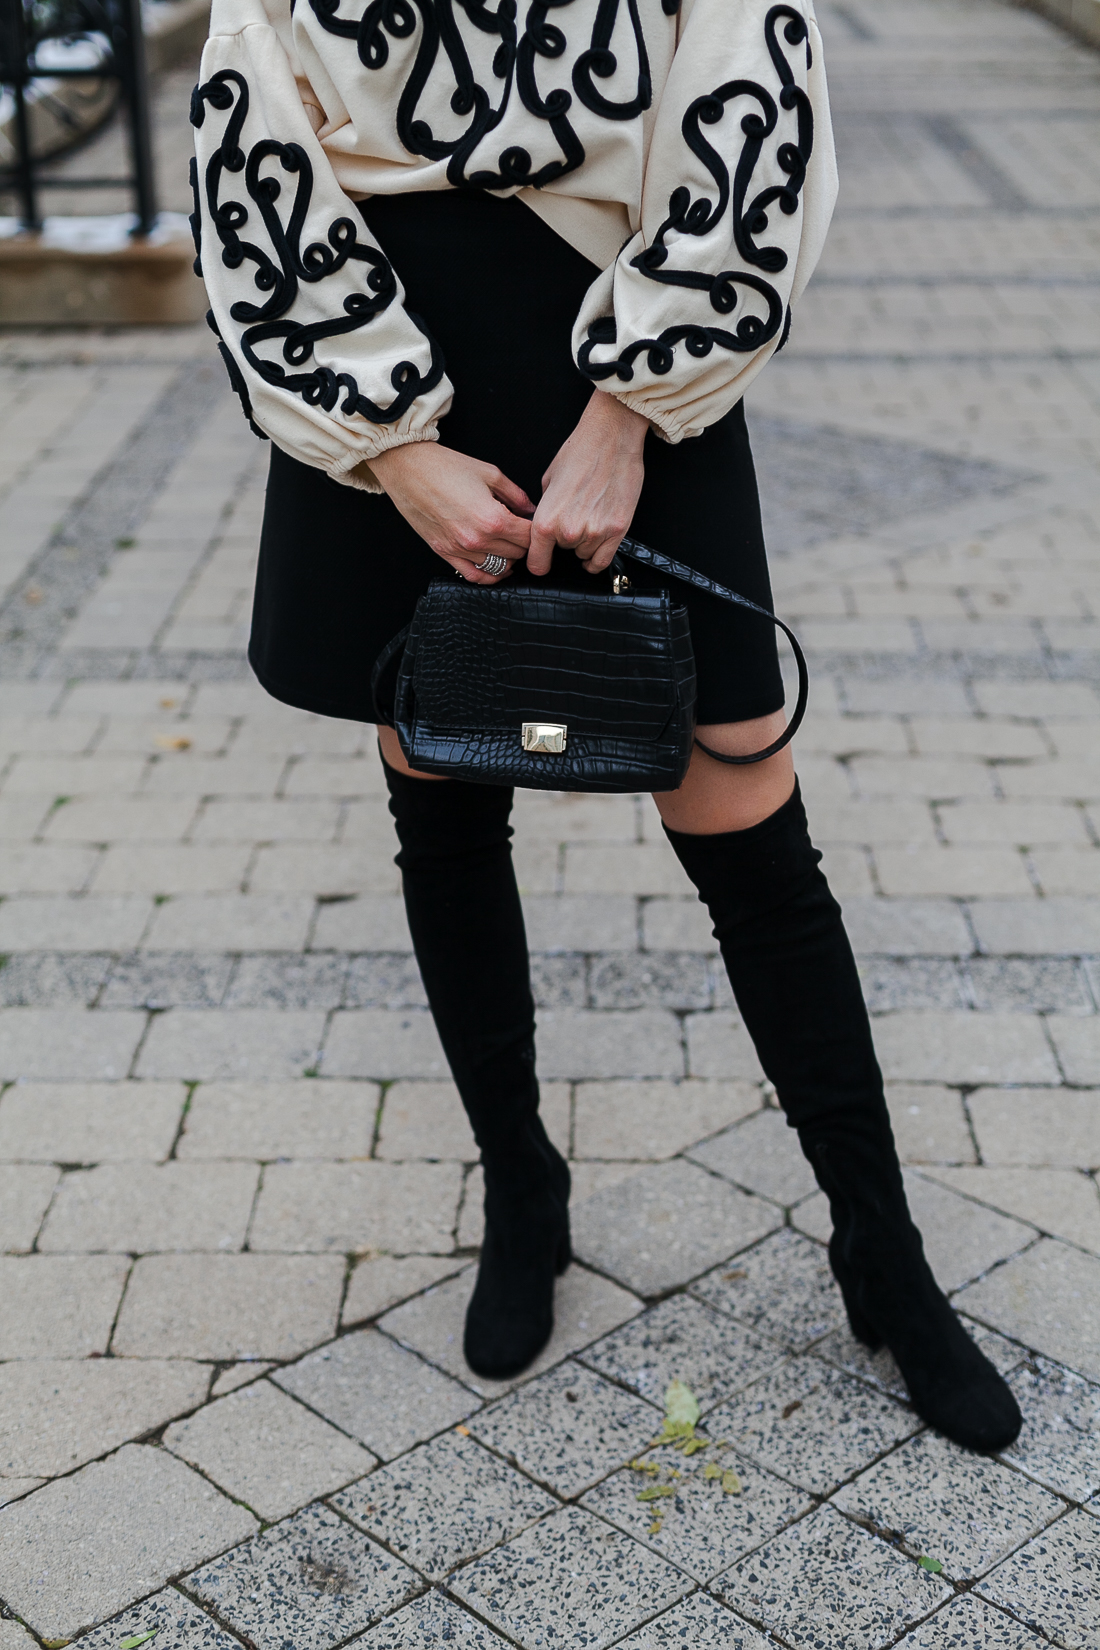 Yana Frigelis of NoMad Luxuries wearing an embroidered sweatshirt from zara and over the knee boots for a simple yet statement making outfit